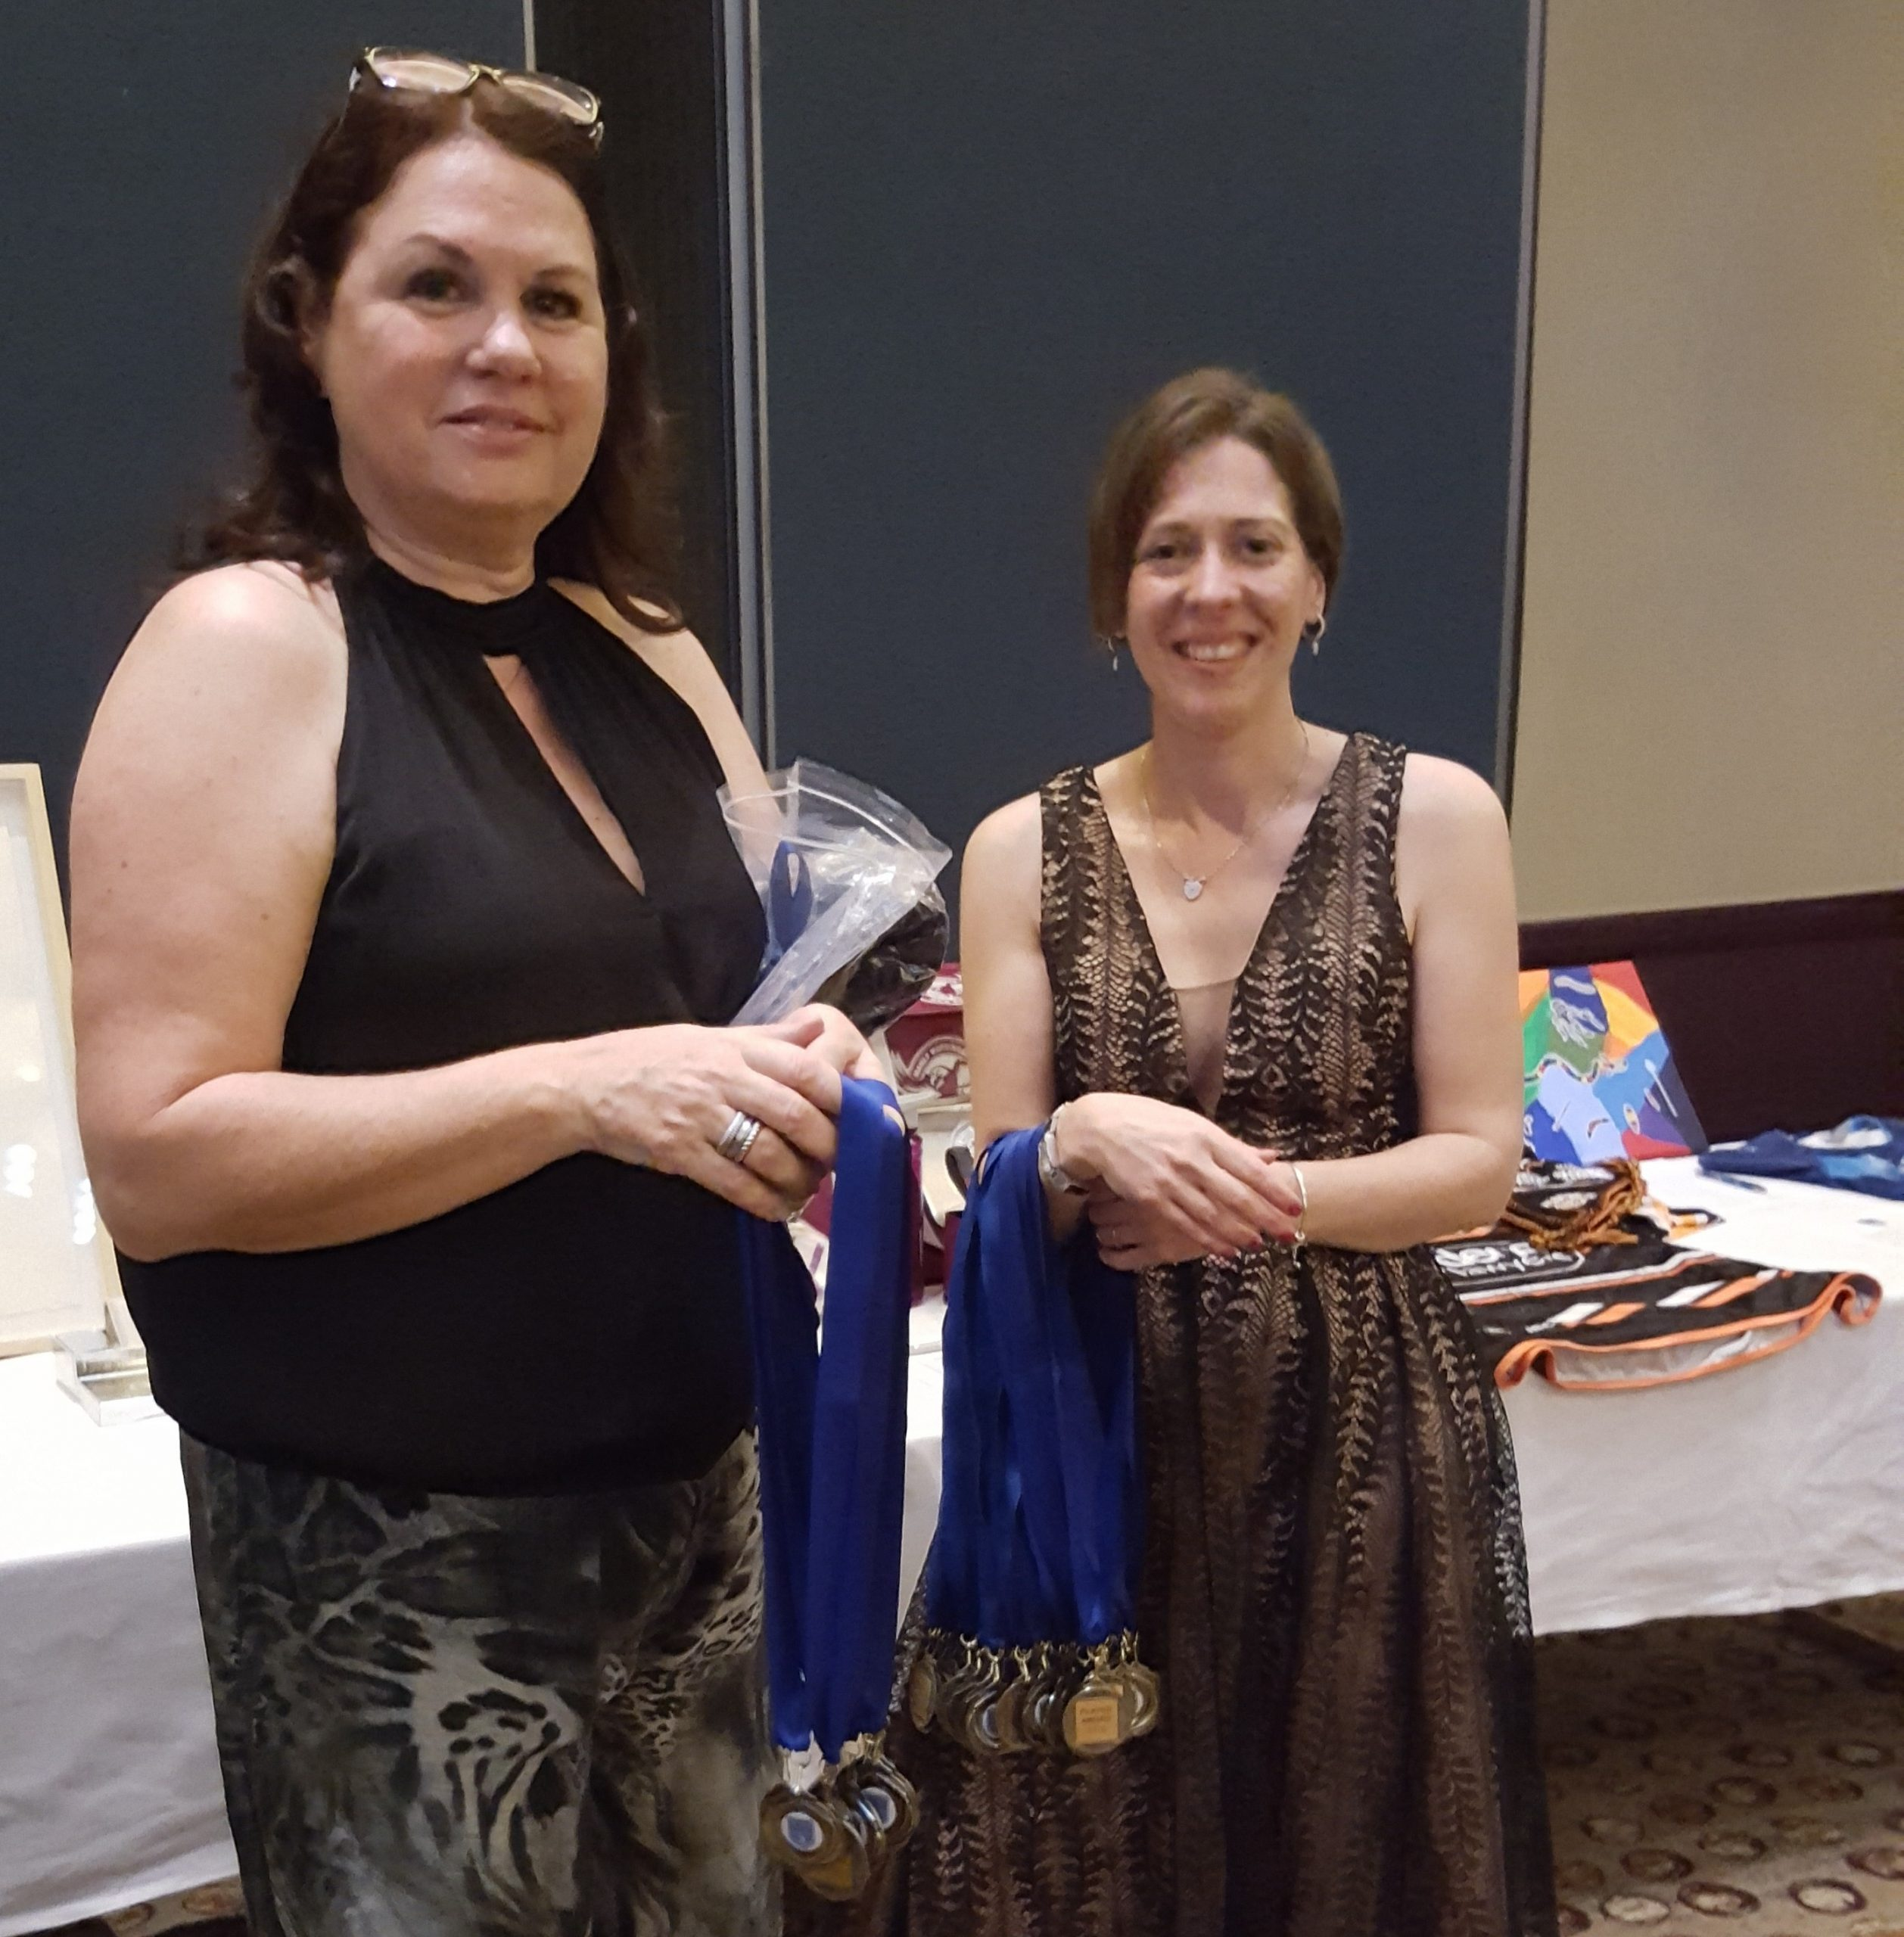 Presentation Night 2019 - Trish and Michelle handing out player medallions